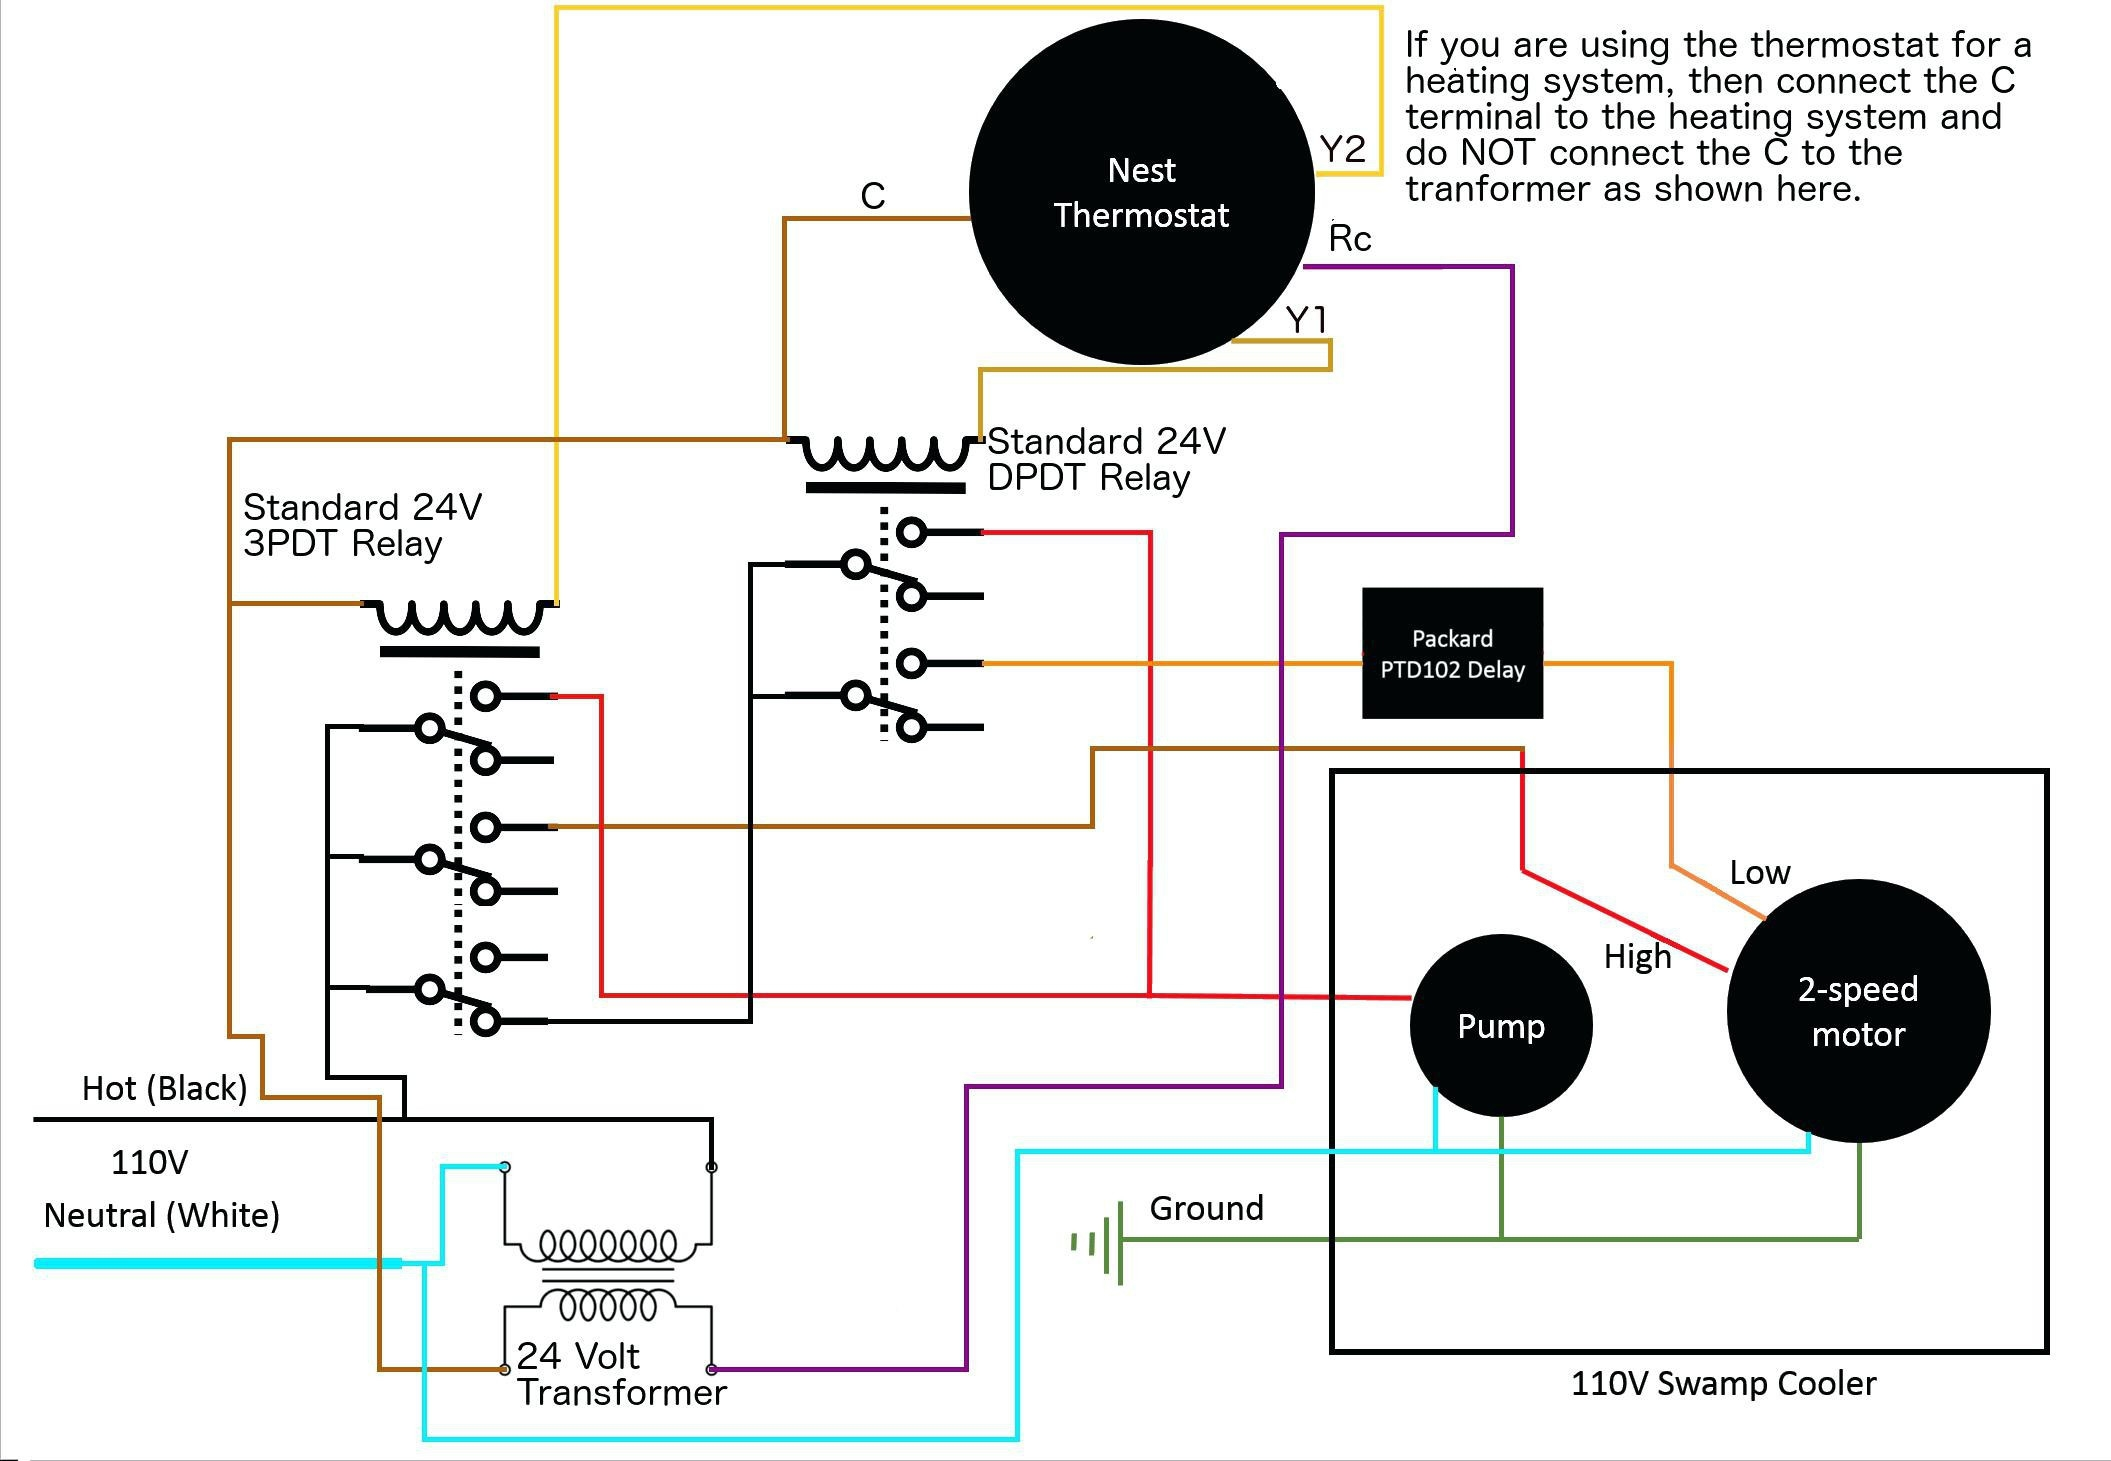 Wiring Diagram On Coast 3 Free Download Wiring Diagram Schematic